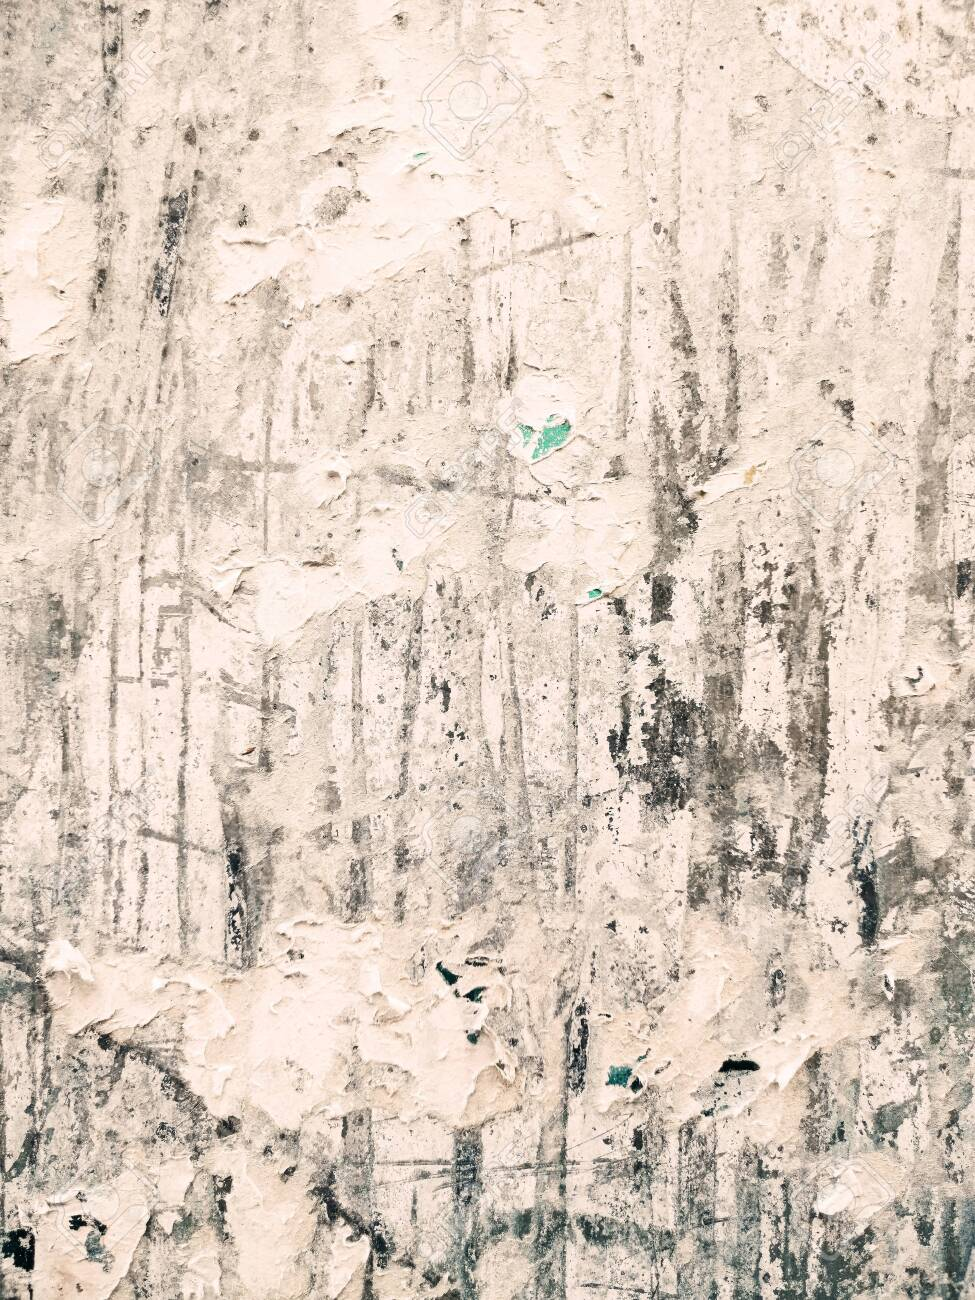 Vintage old posters sticked and torn on wall for your grunge background - 133954062